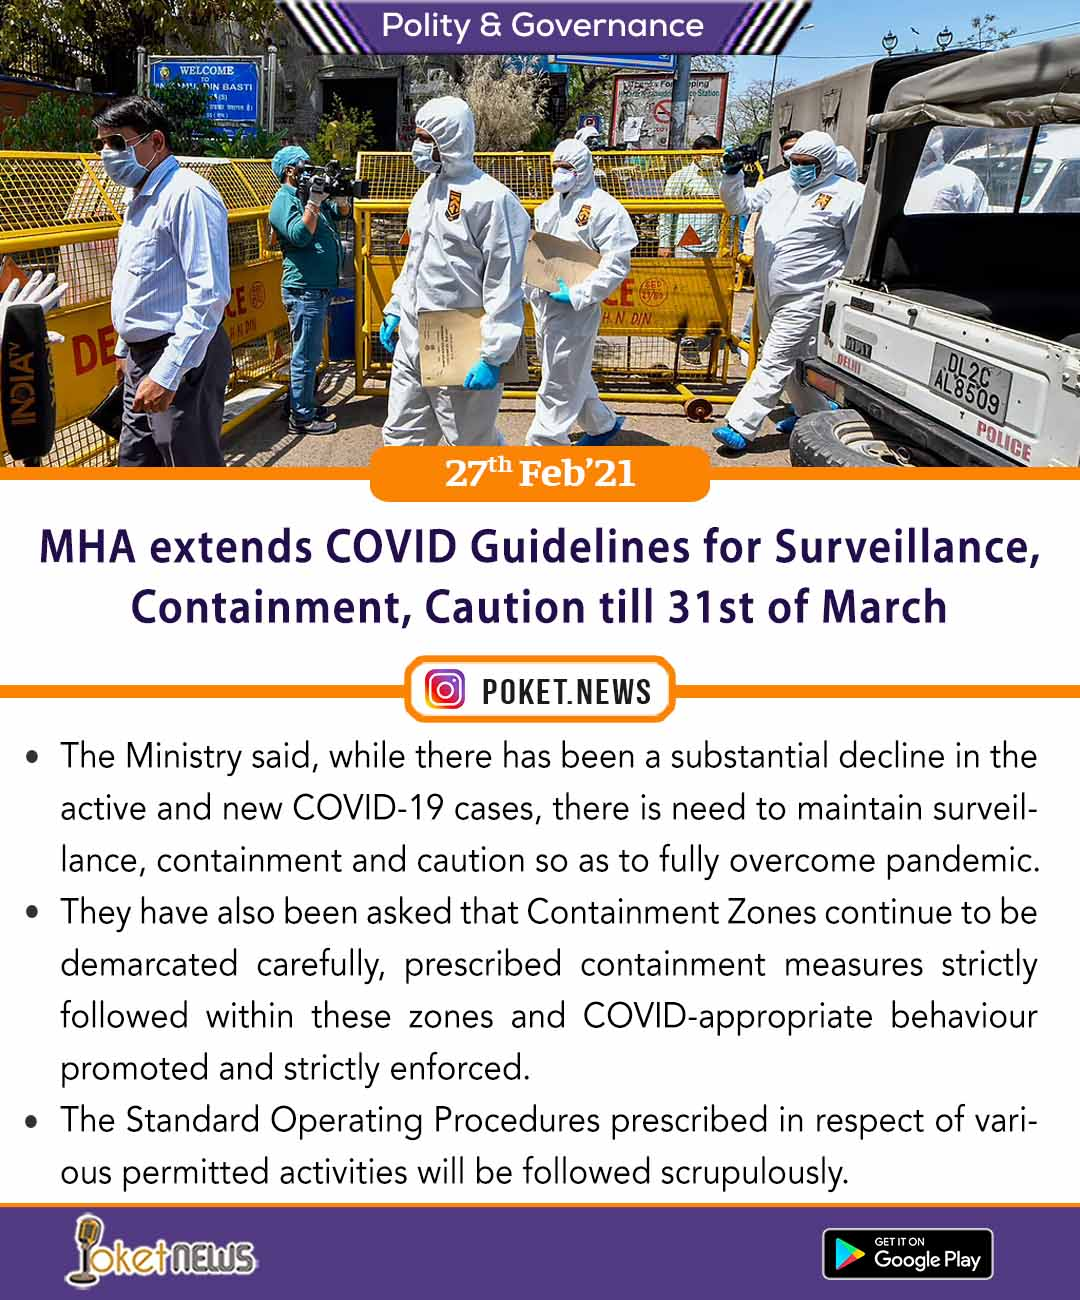 MHA extends COVID Guidelines for Surveillance, Containment, Caution till 31st of March